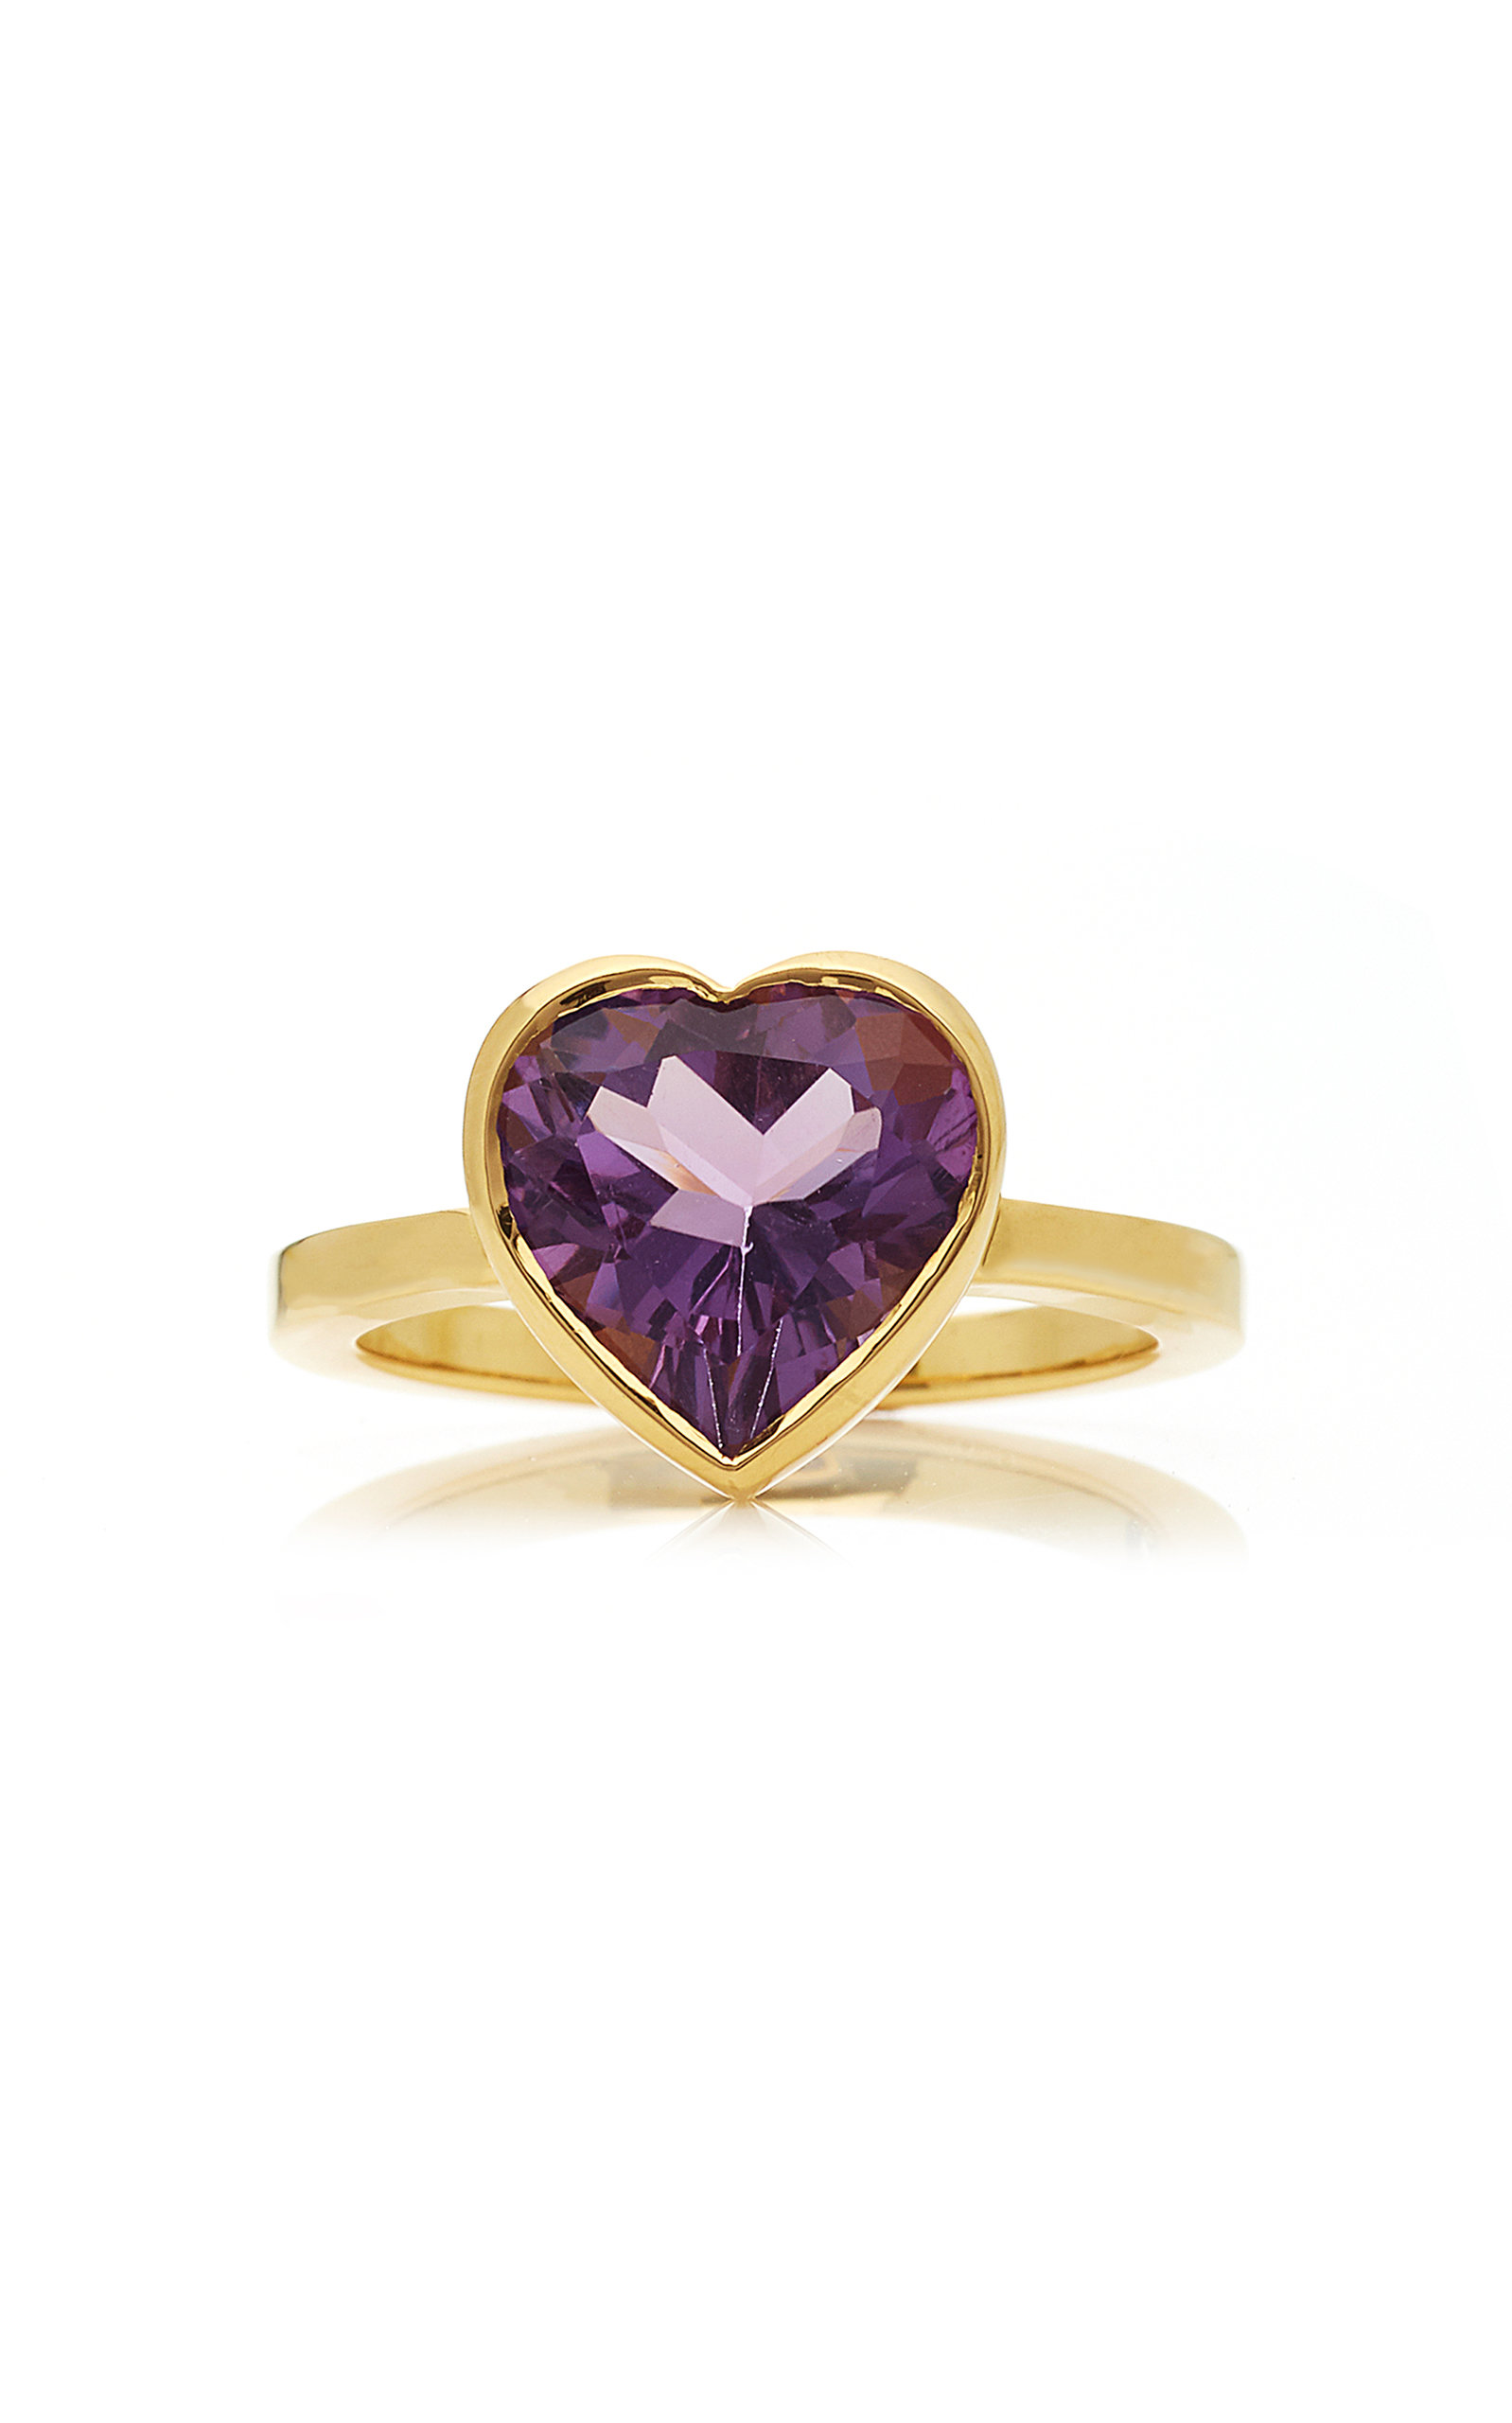 Women's Large Heart 18K Gold and Amethyst Ring